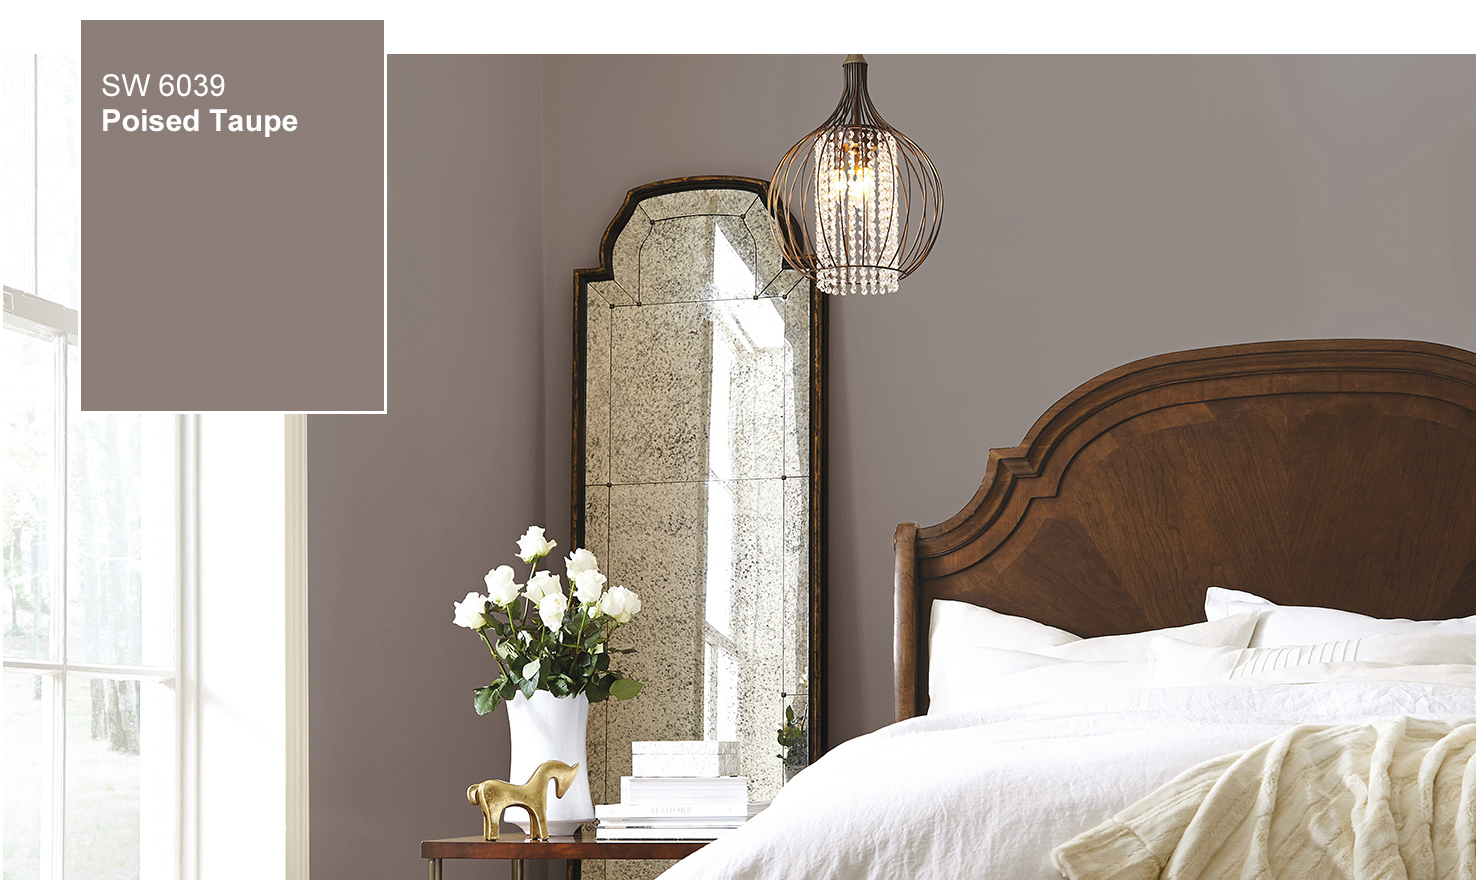 Popular Paint Colors 2017 2017 sherwin-williams color of the year - poised taupe